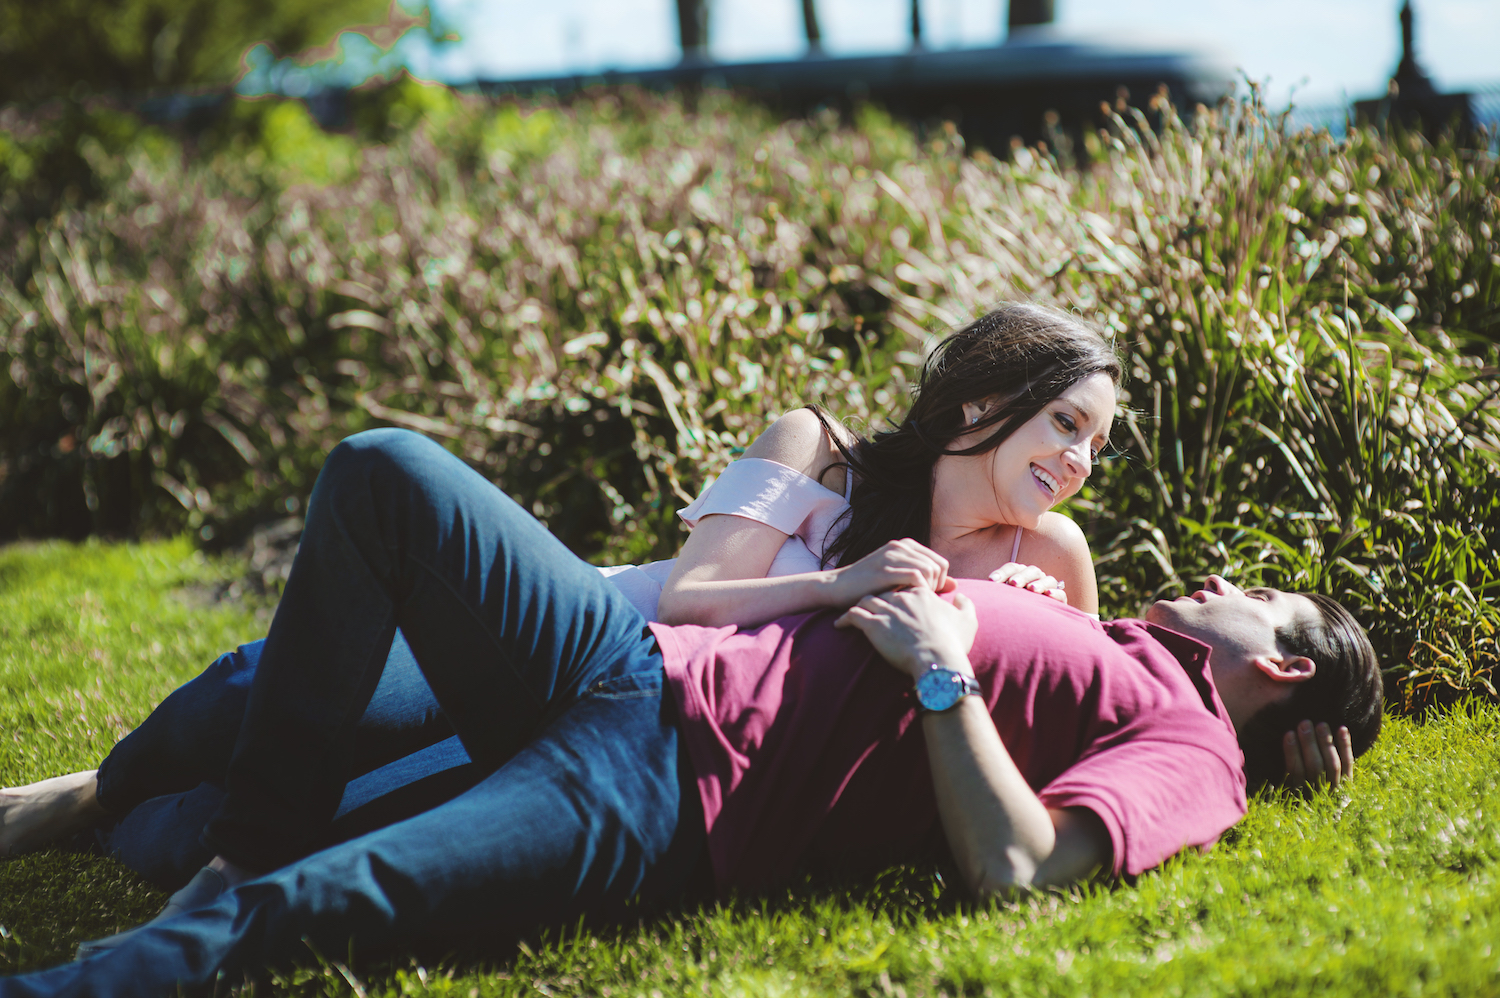 clarissa&jesse-lying-on-grass-engagement-photography-nyc